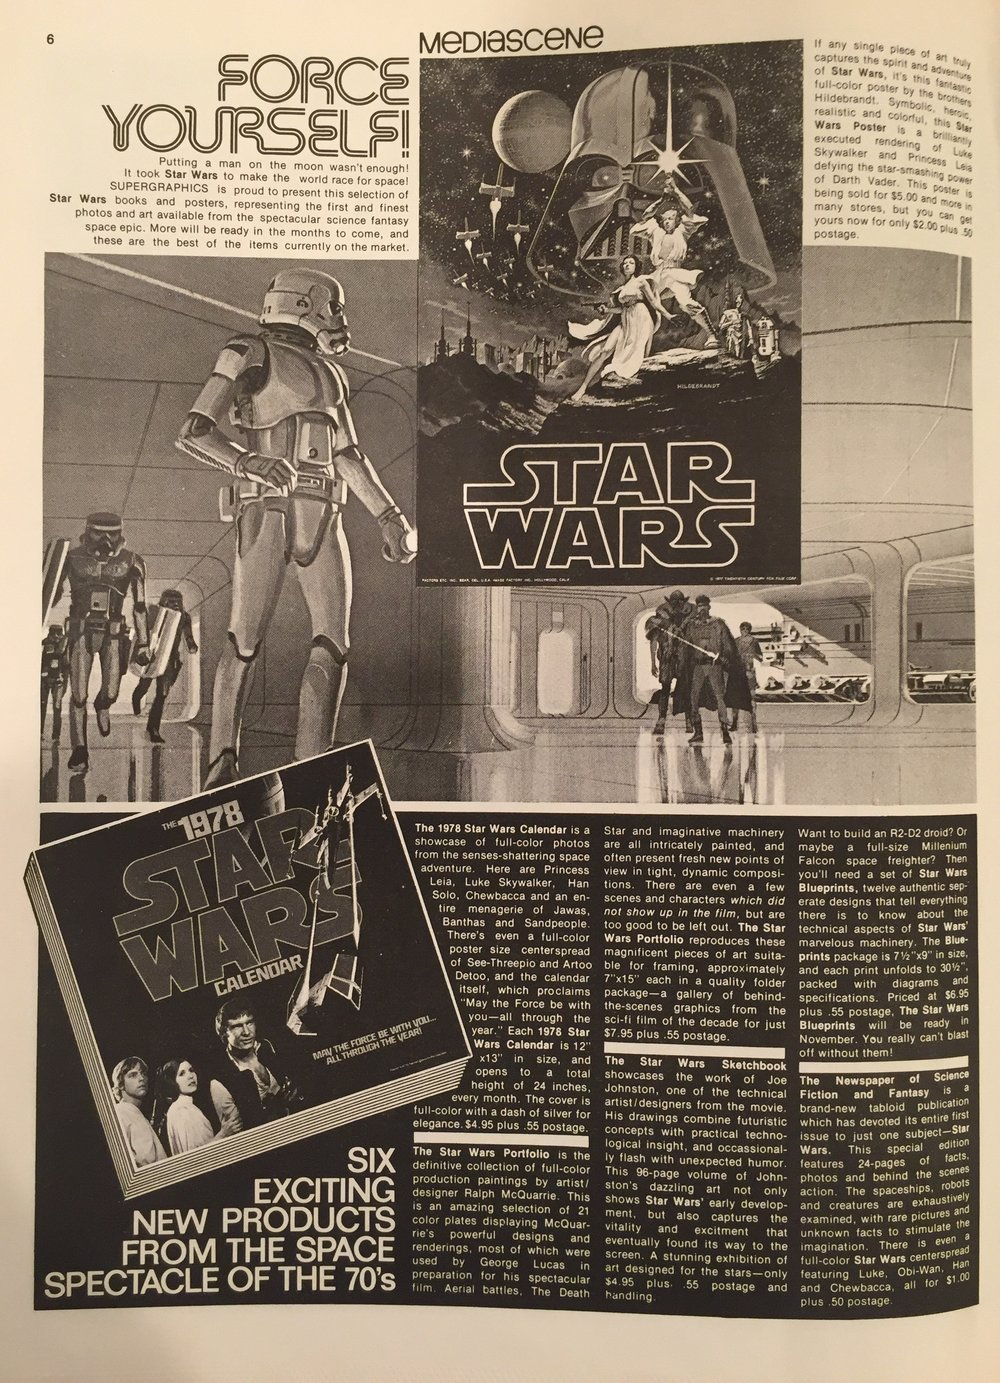 This ad showcases some of the quality licensed products available for fans, including the commercial Hildebrandt poster for $2.00, the 1978 Star Wars Calendar for $4.95, the  Star Wars Portfolio  for $7.95, the  Star Wars Sketchbook  for $4.95, and Star Wars Blueprints for $6.95.